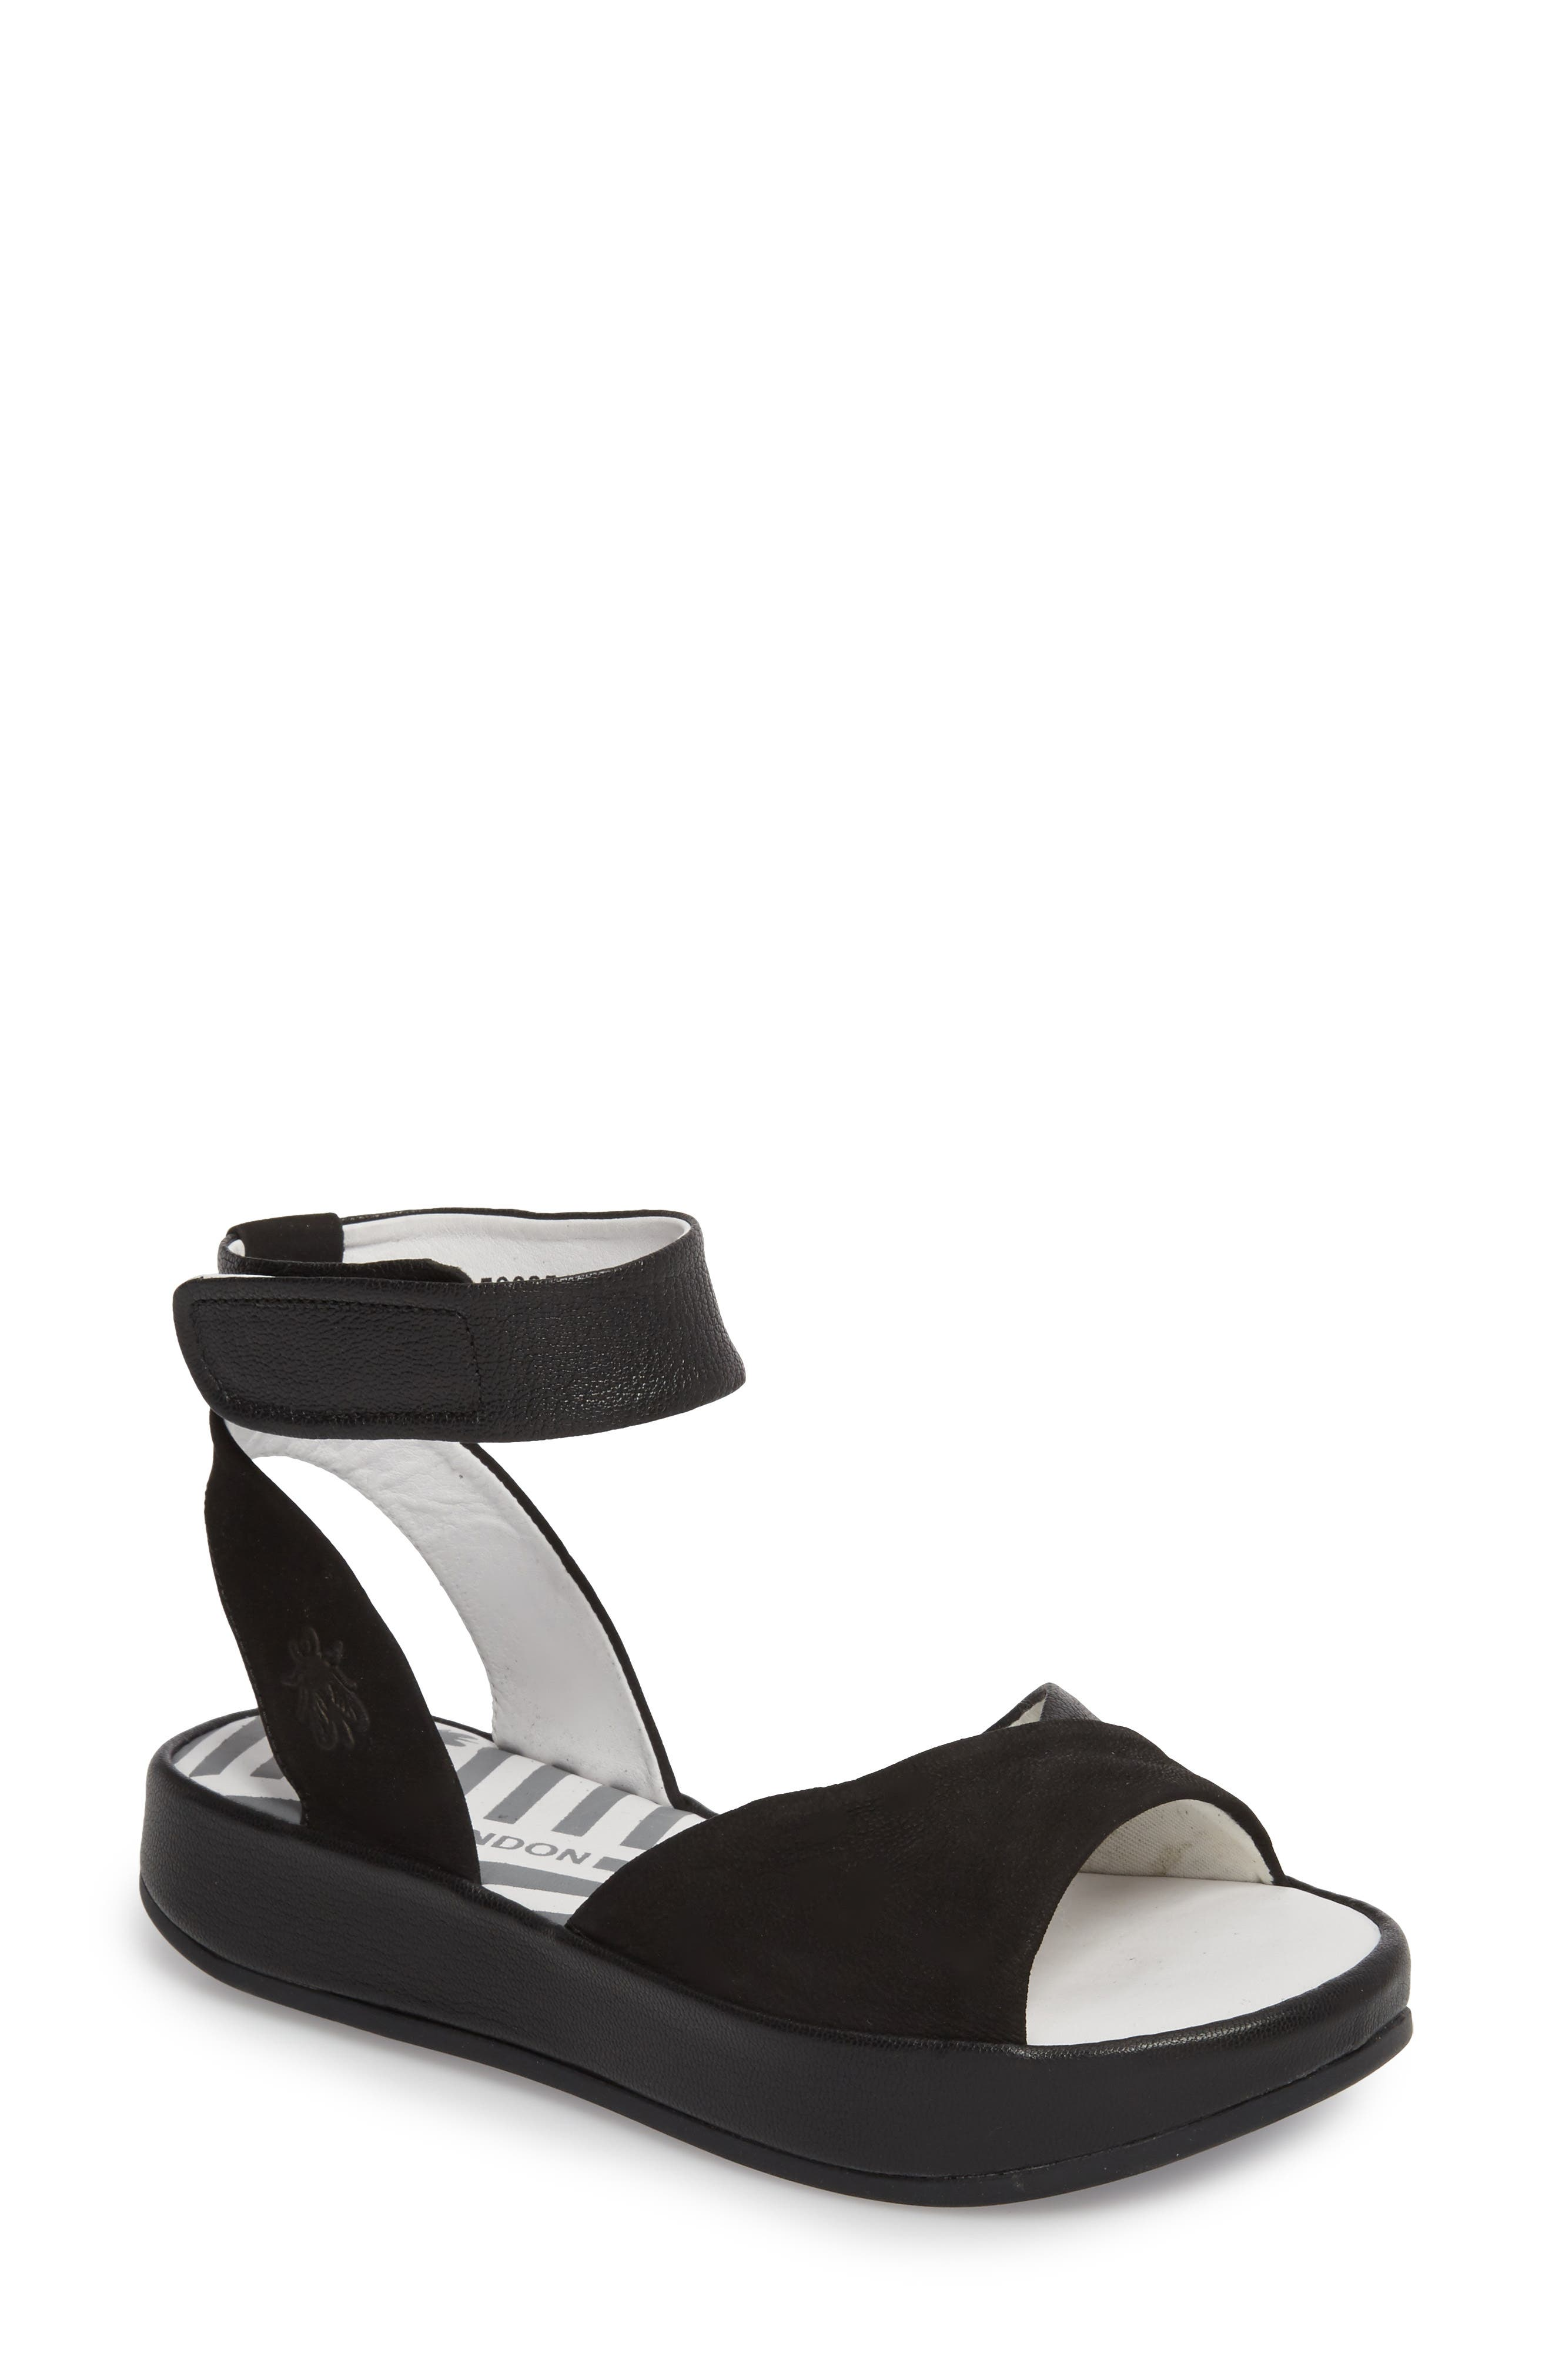 Bibb Sandal,                             Main thumbnail 1, color,                             BLACK MIX LEATHER